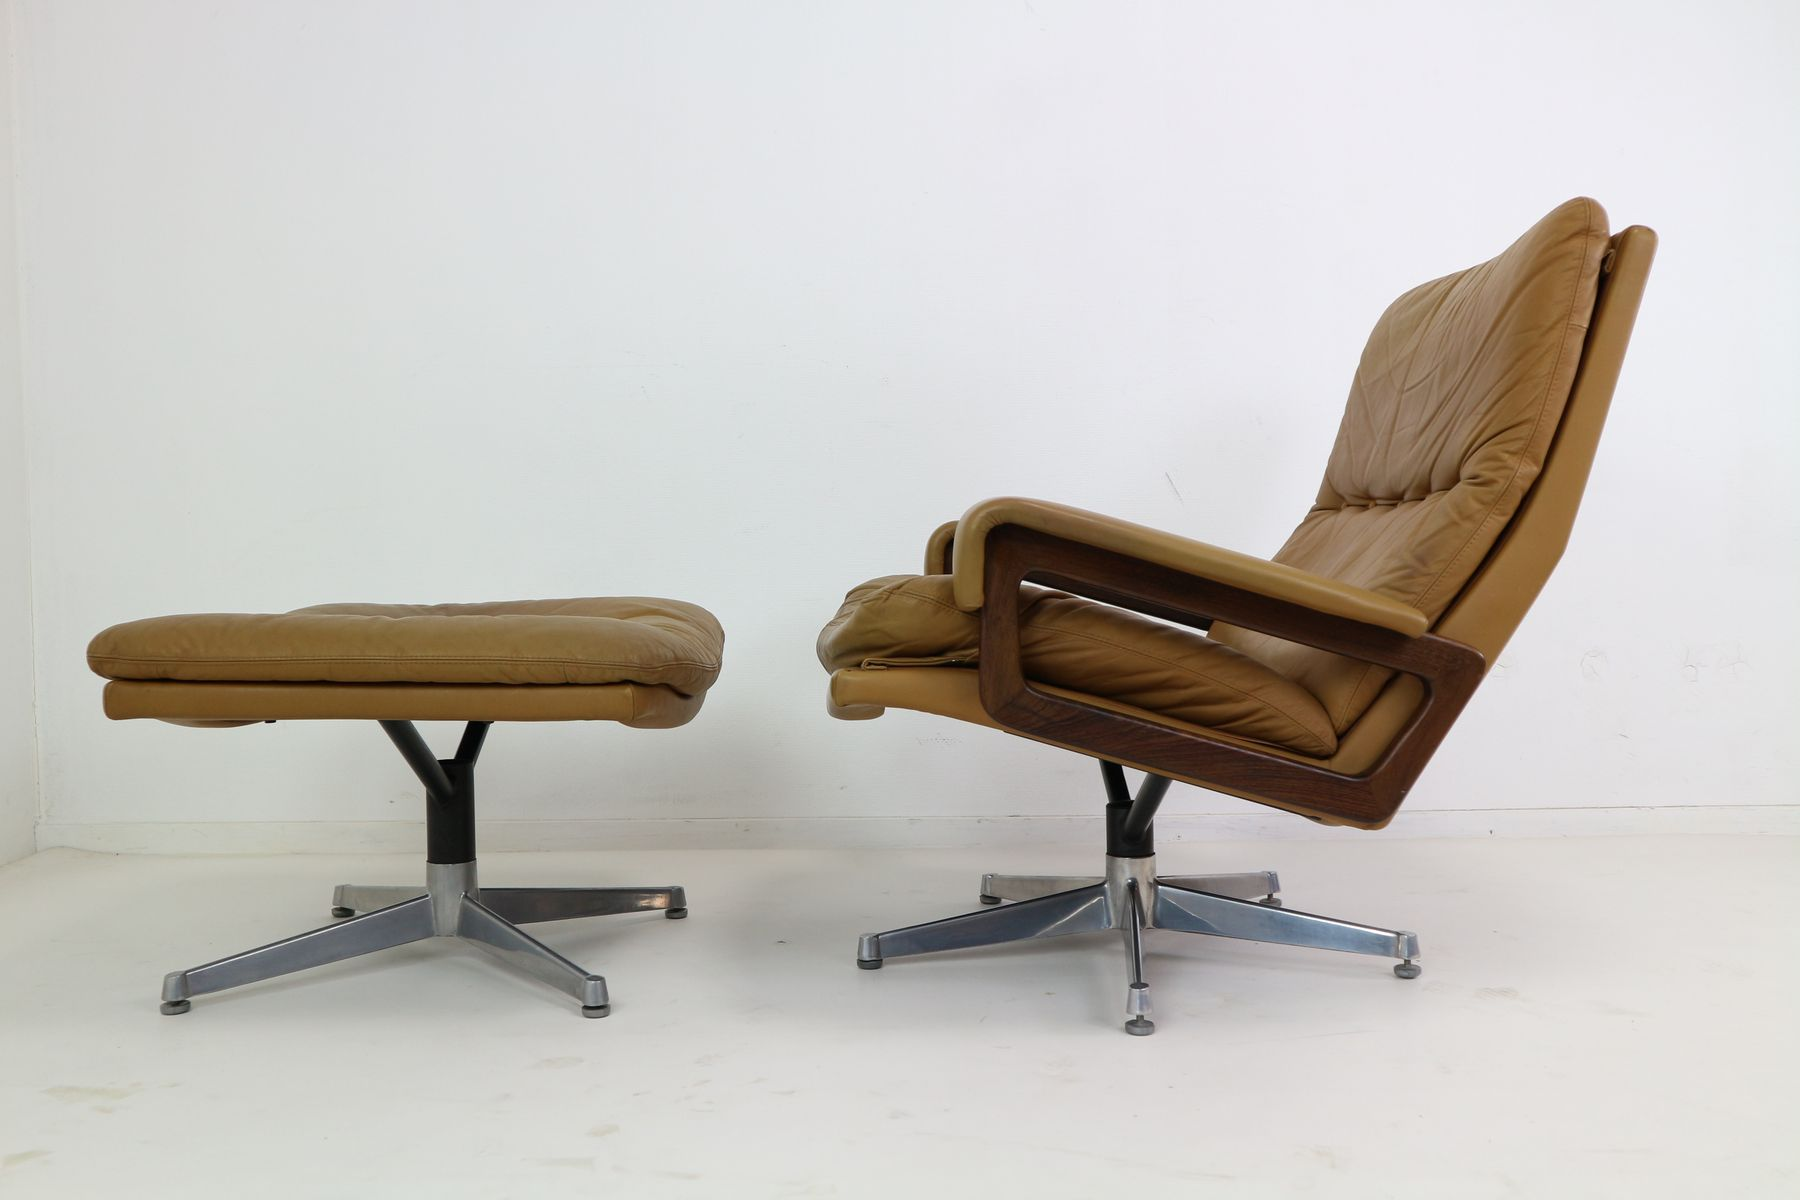 King Swivel Lounge Chair and Ottoman in Cognac Leather by Andre